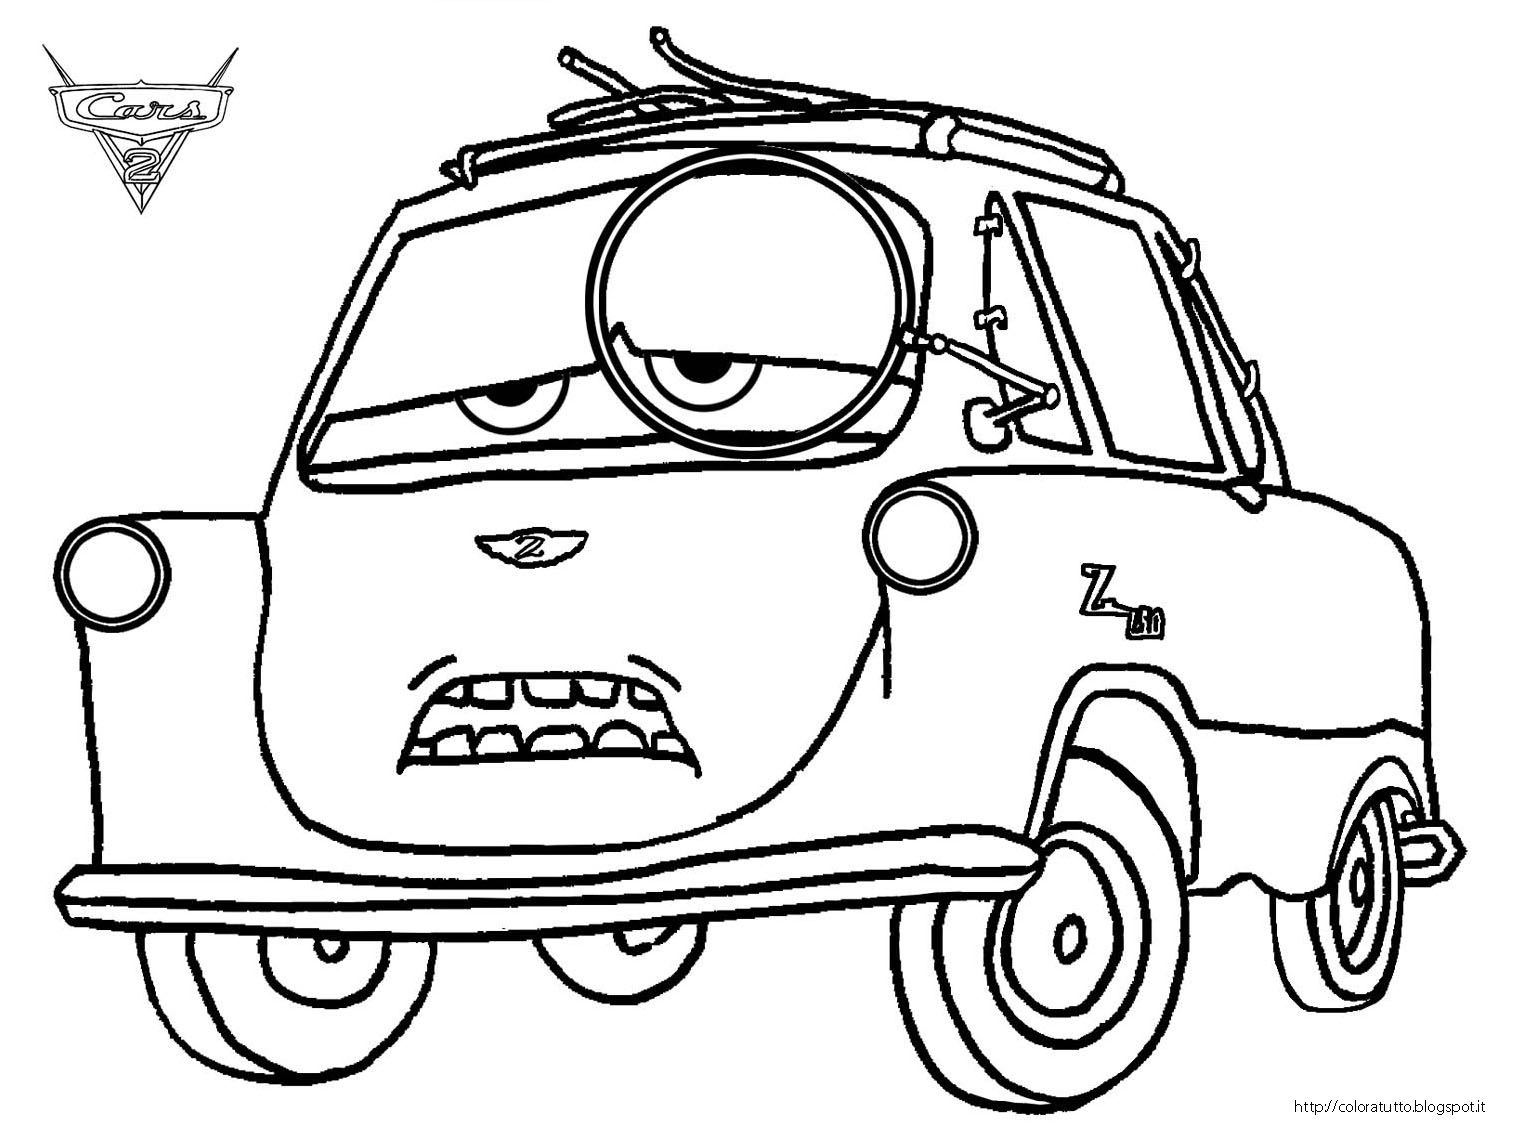 Ausmalbilder Cars 2 : Cars 2 Drawing Pictures At Getdrawings Com Free For Personal Use